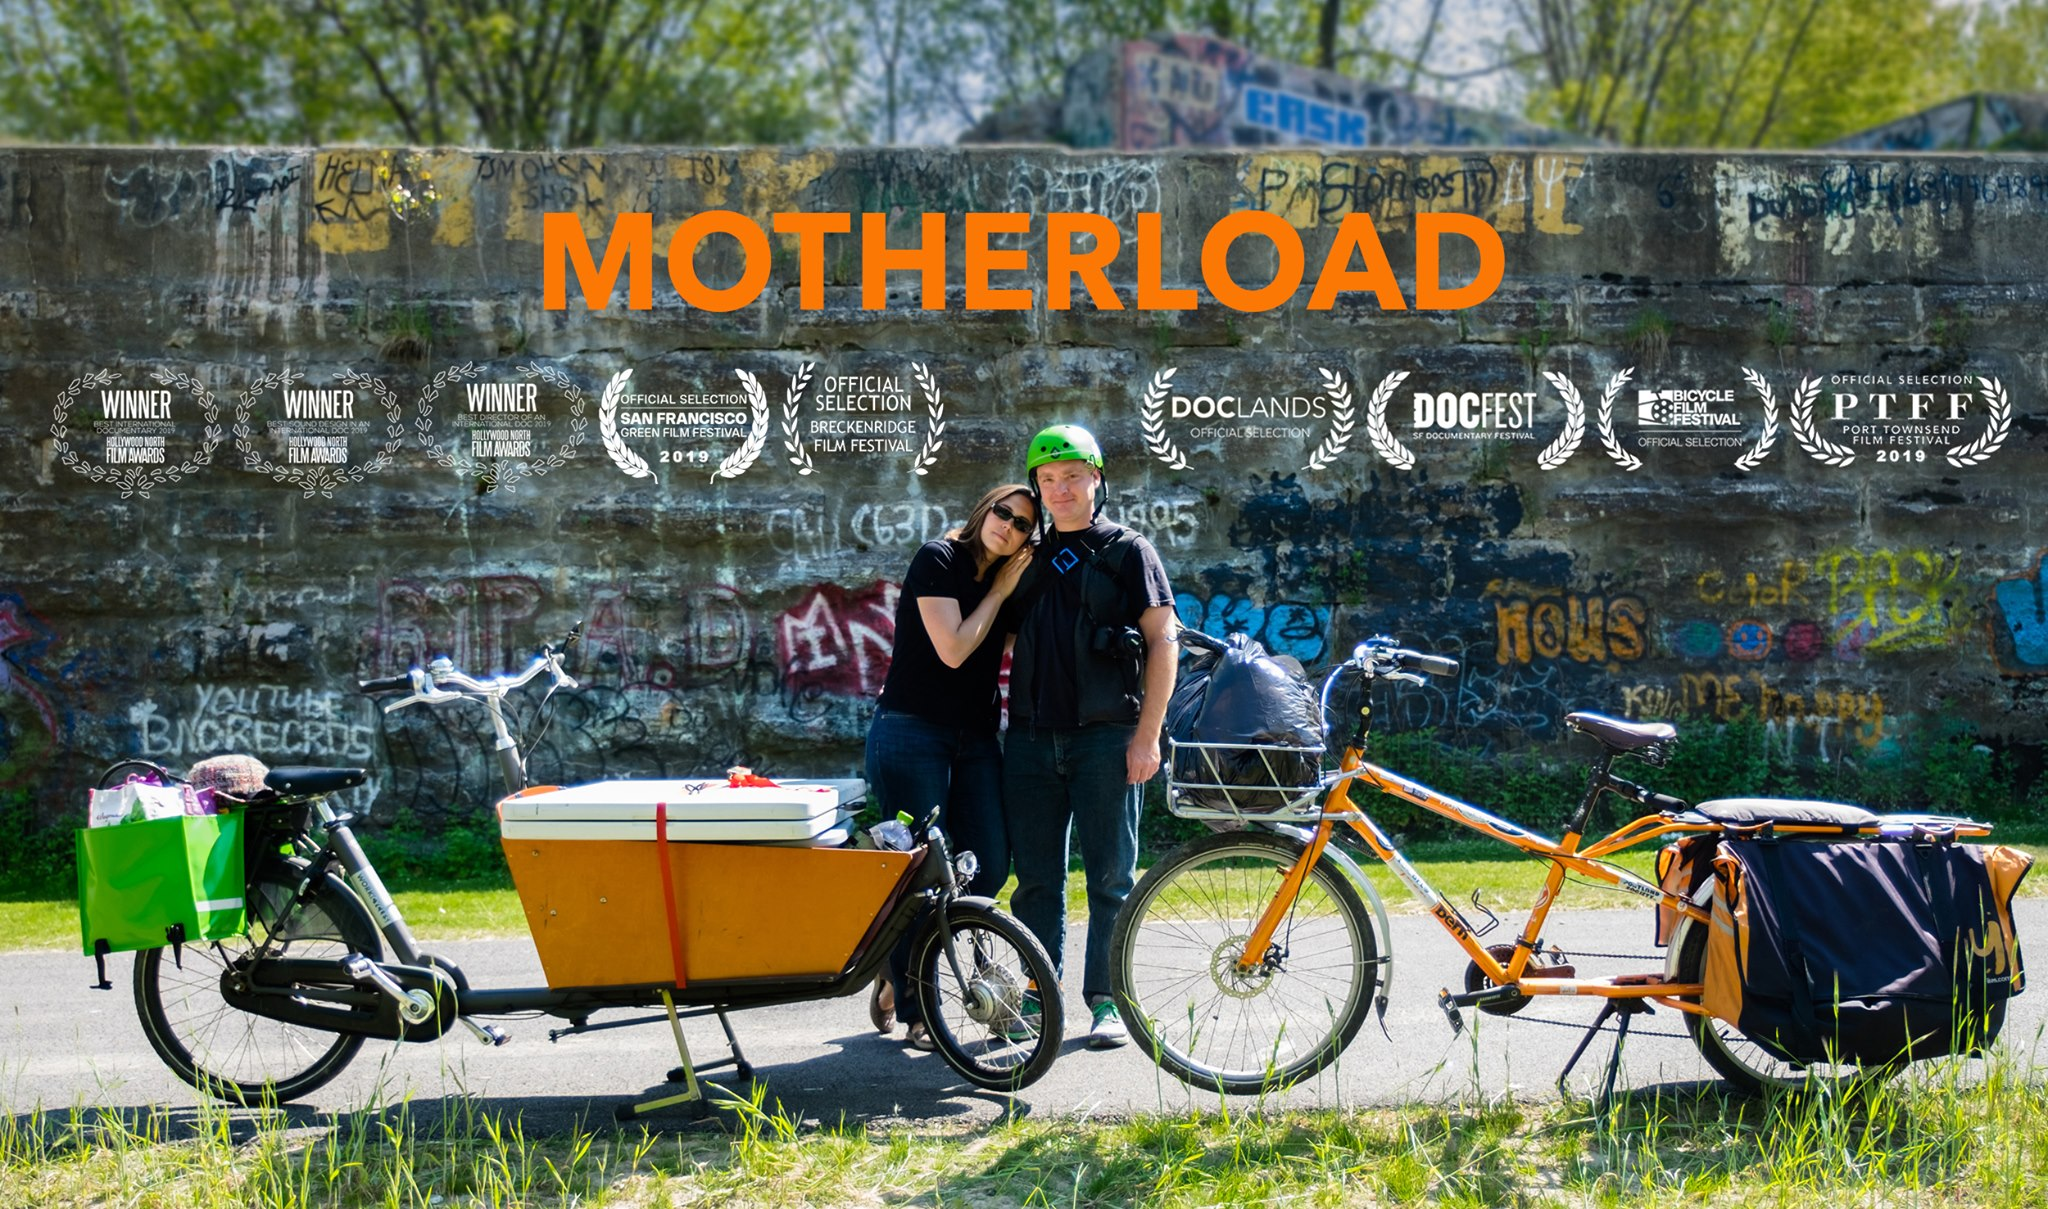 Motherload, un documentaire de Liz Canning